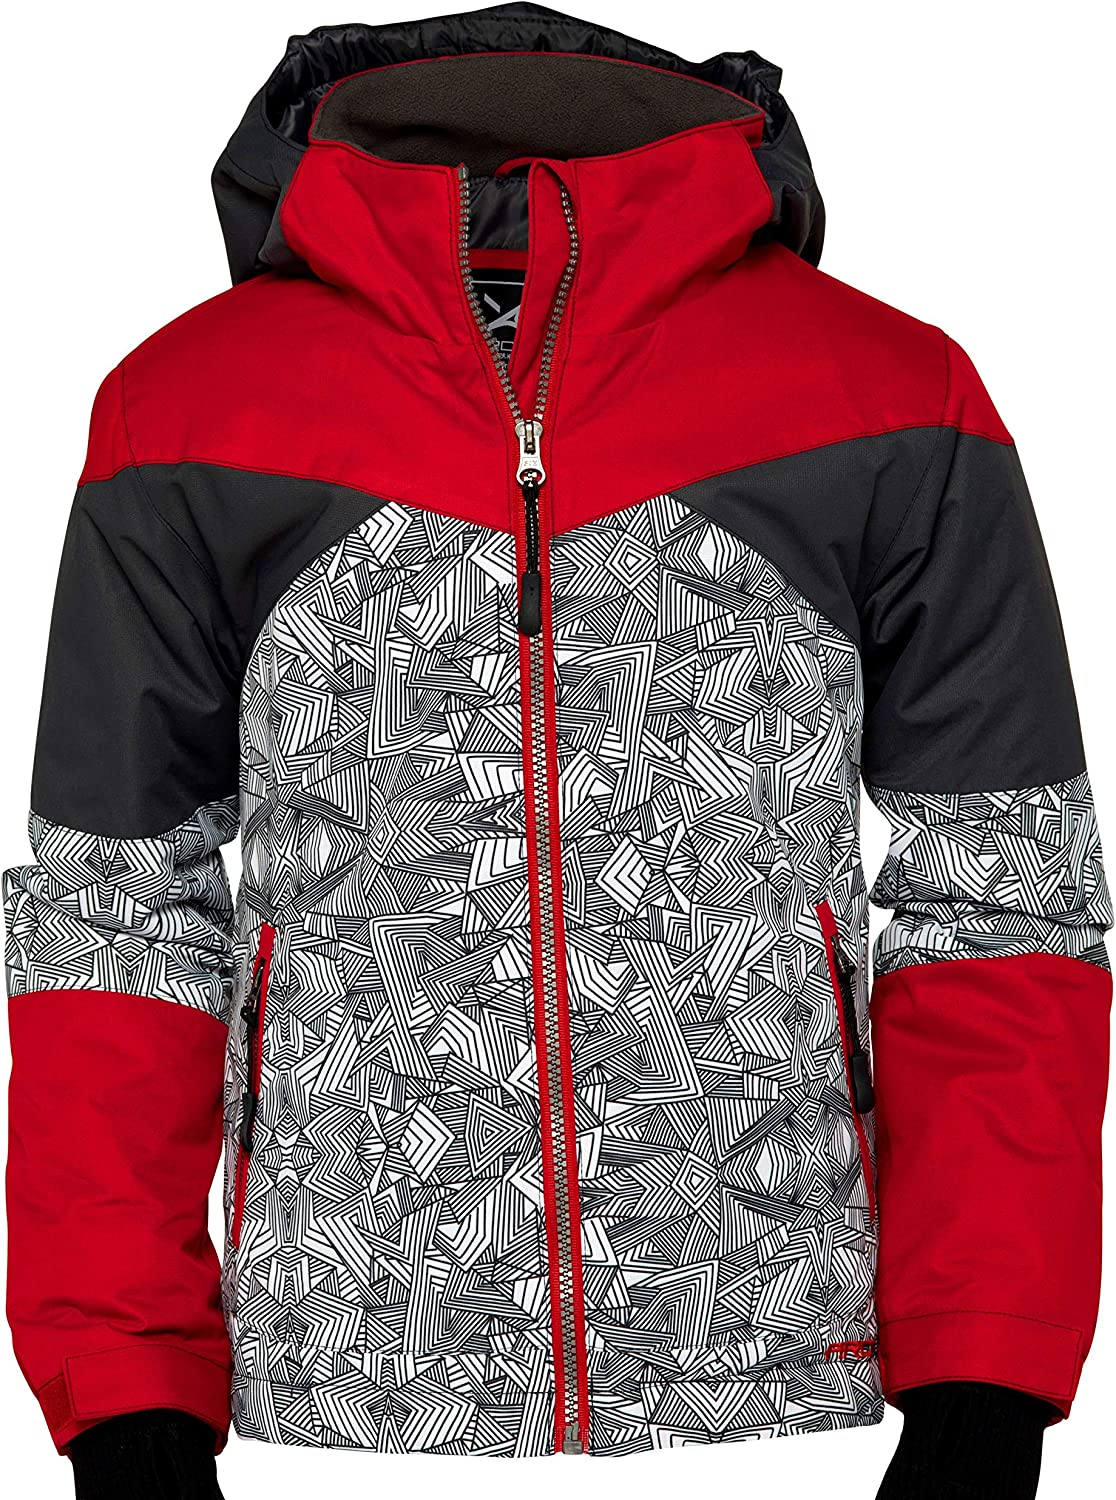 Arctix Boys Ronan Insulated Winter Jacket: Clothing